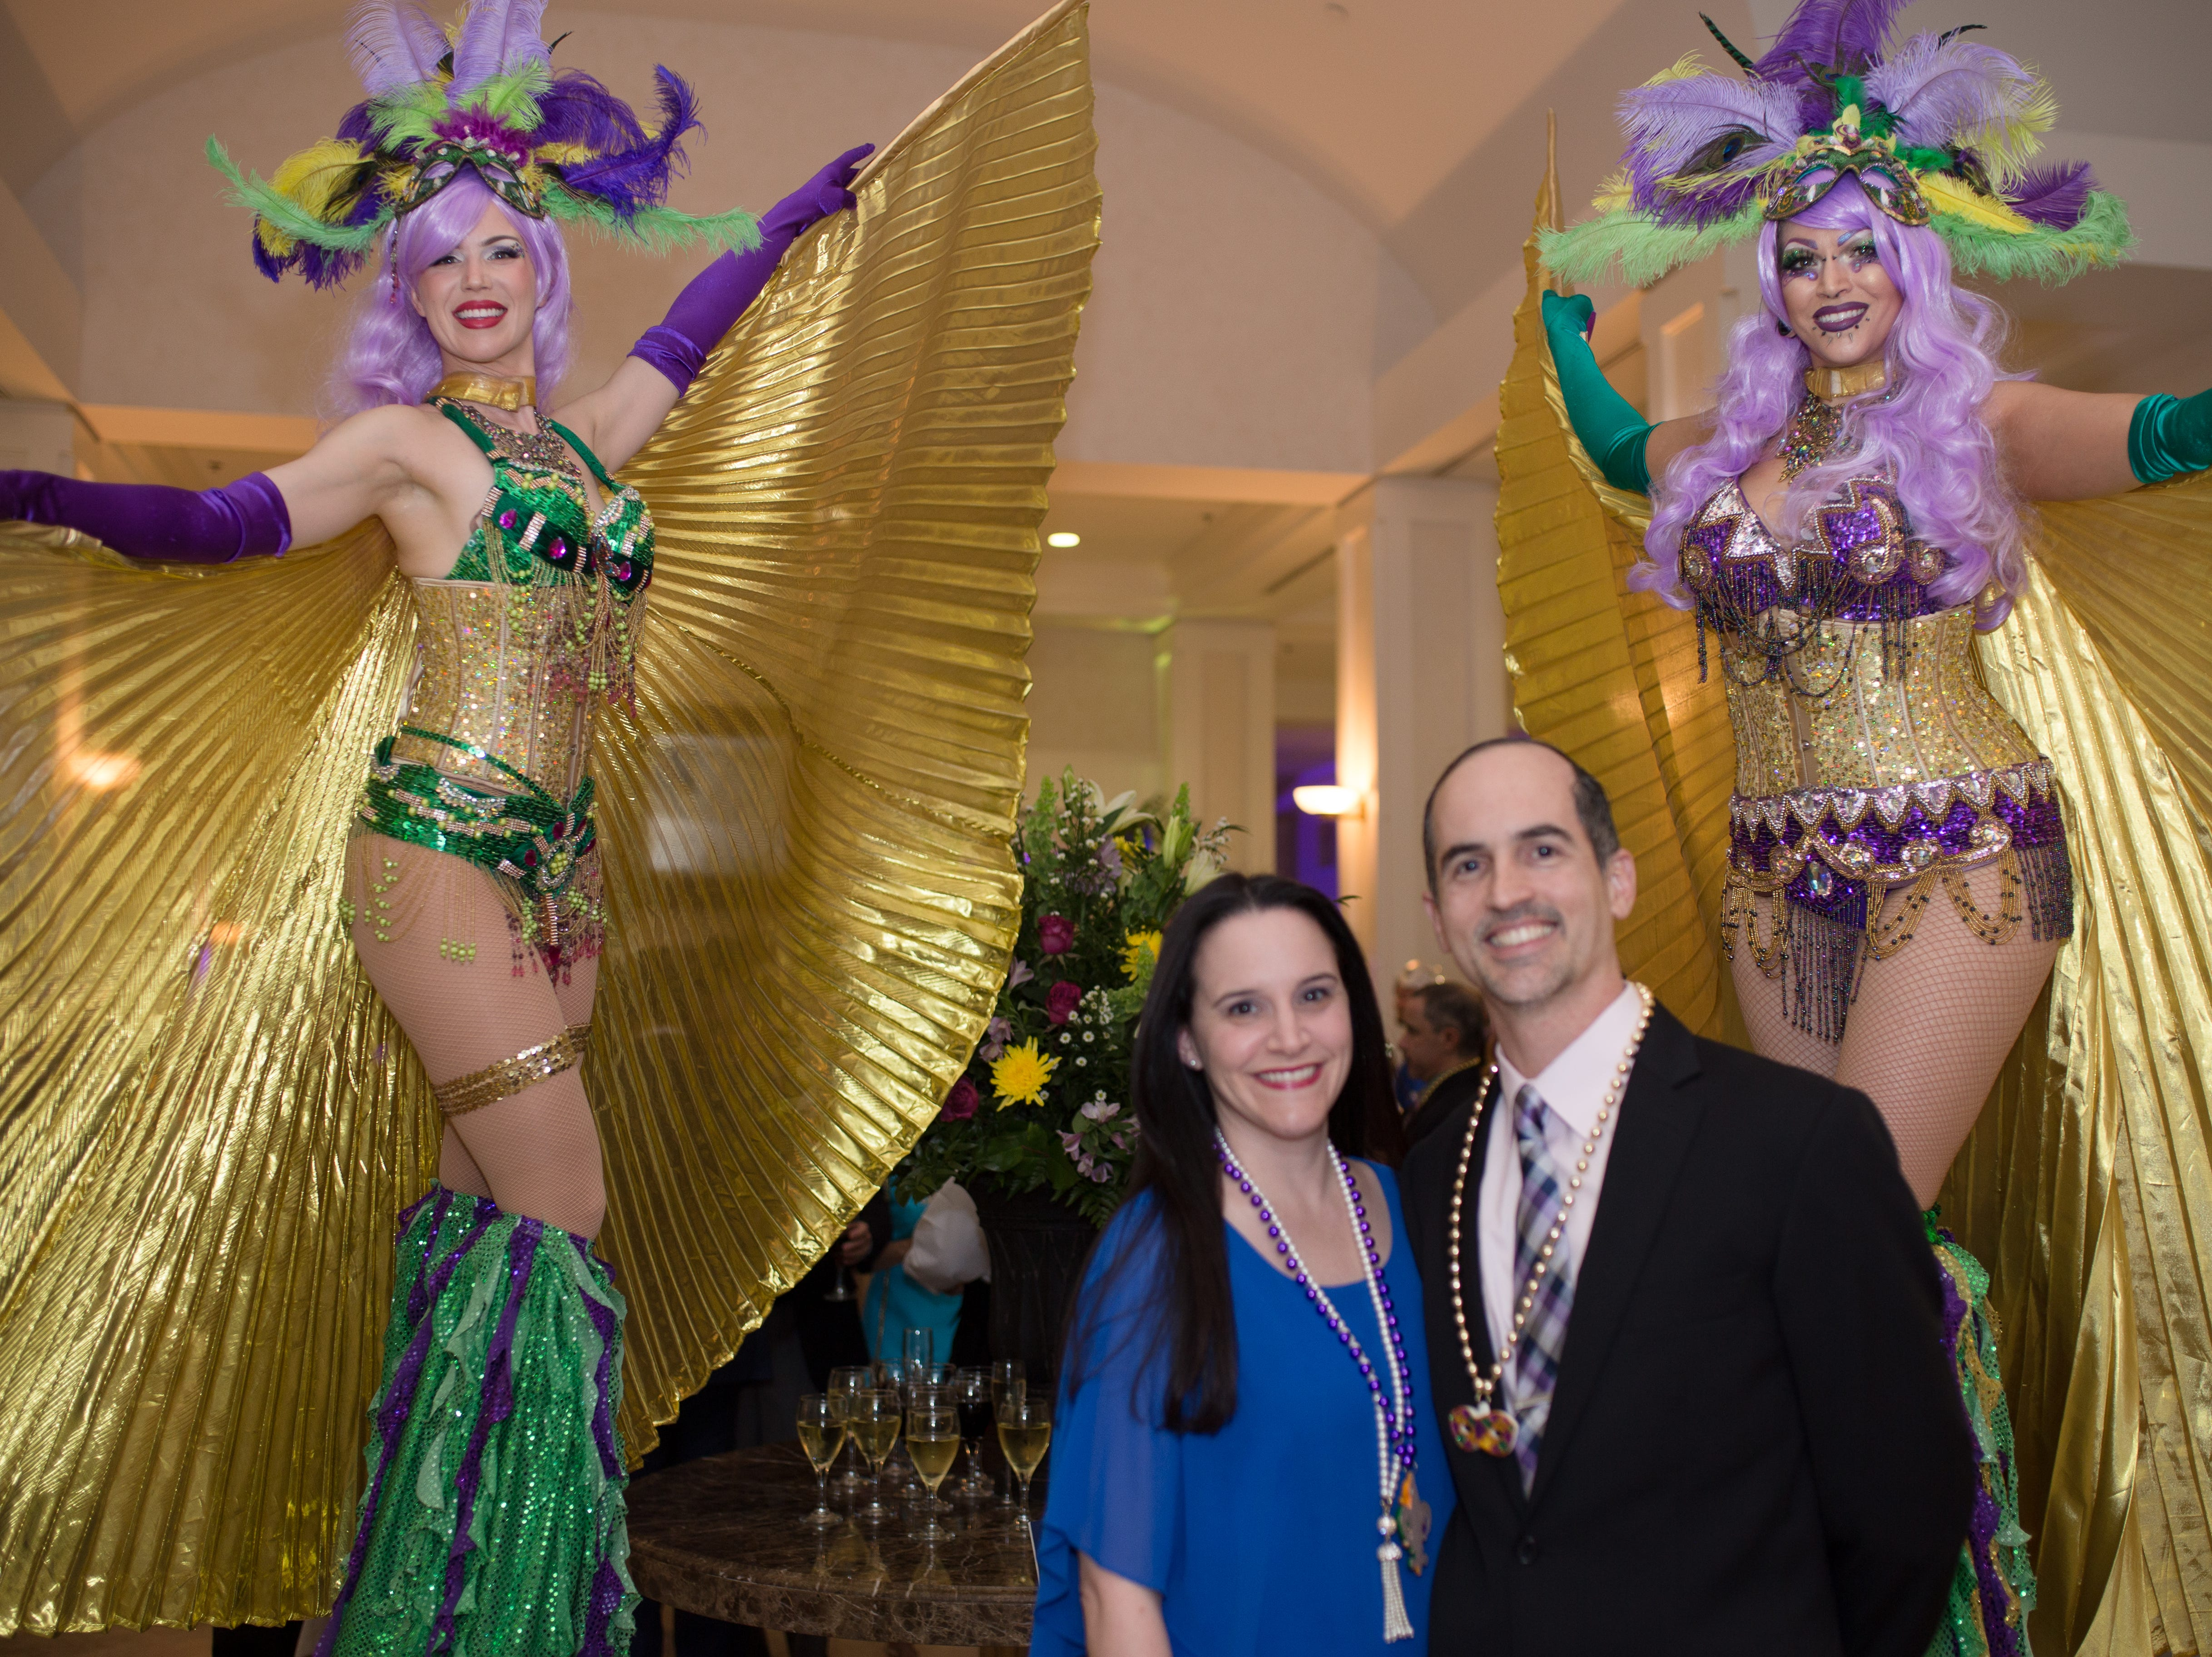 Stiltwalkers surround Sonia Peter and Dr. Arley Peter, a We Care physician, as they enjoy Mardi Gras at the Oak Harbor Club on March 1.